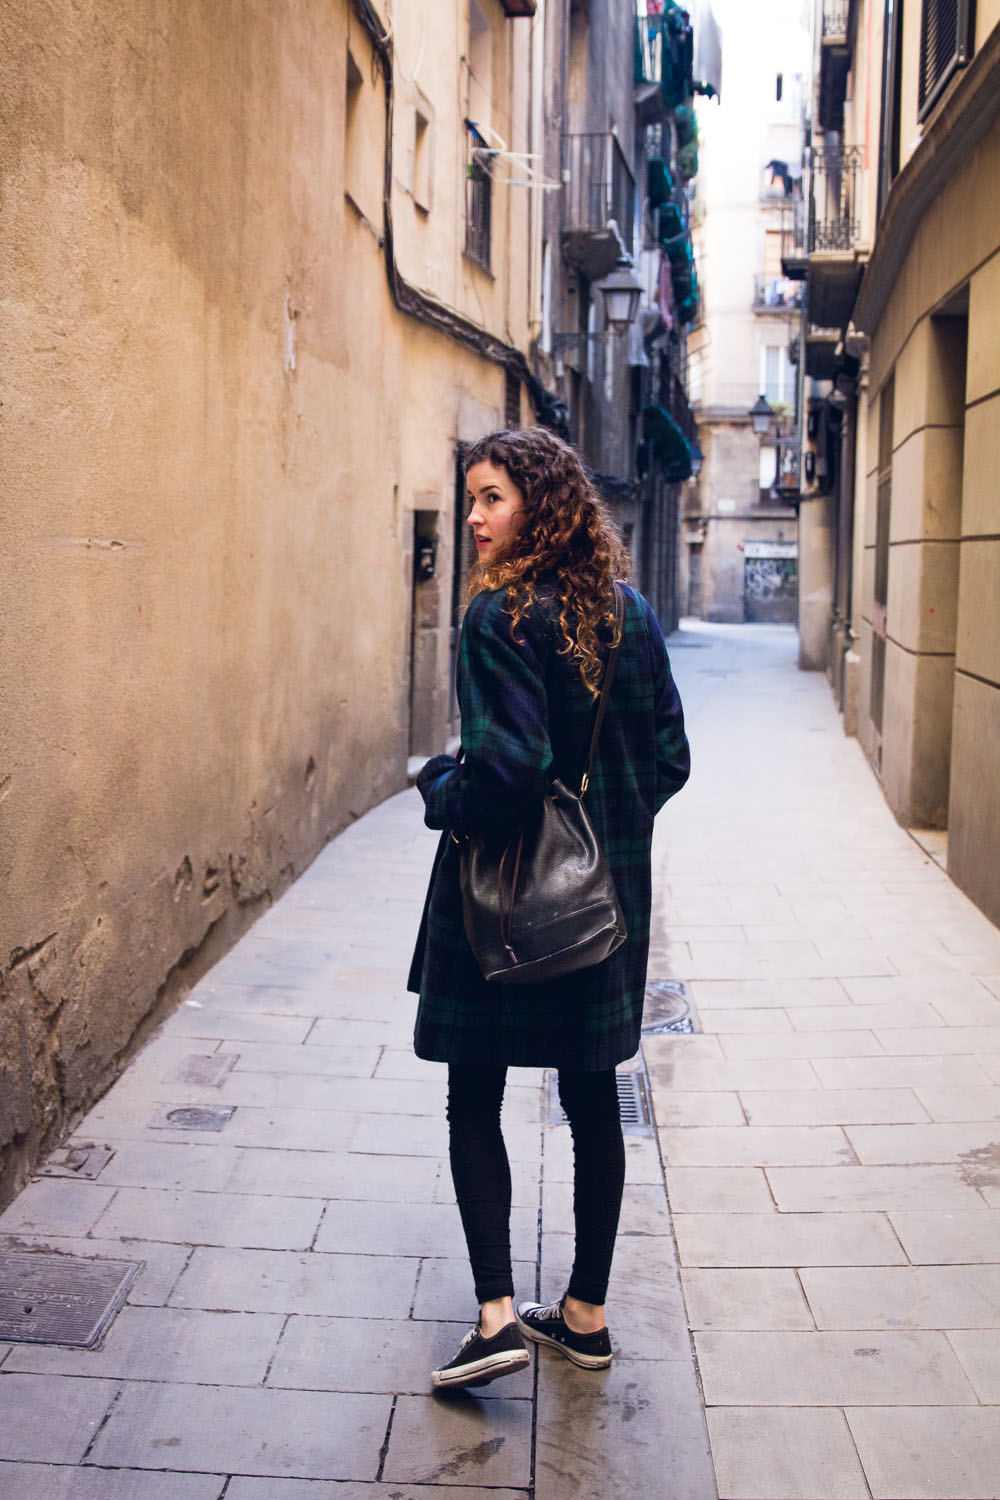 barcelona outfit 2 (7 of 8)